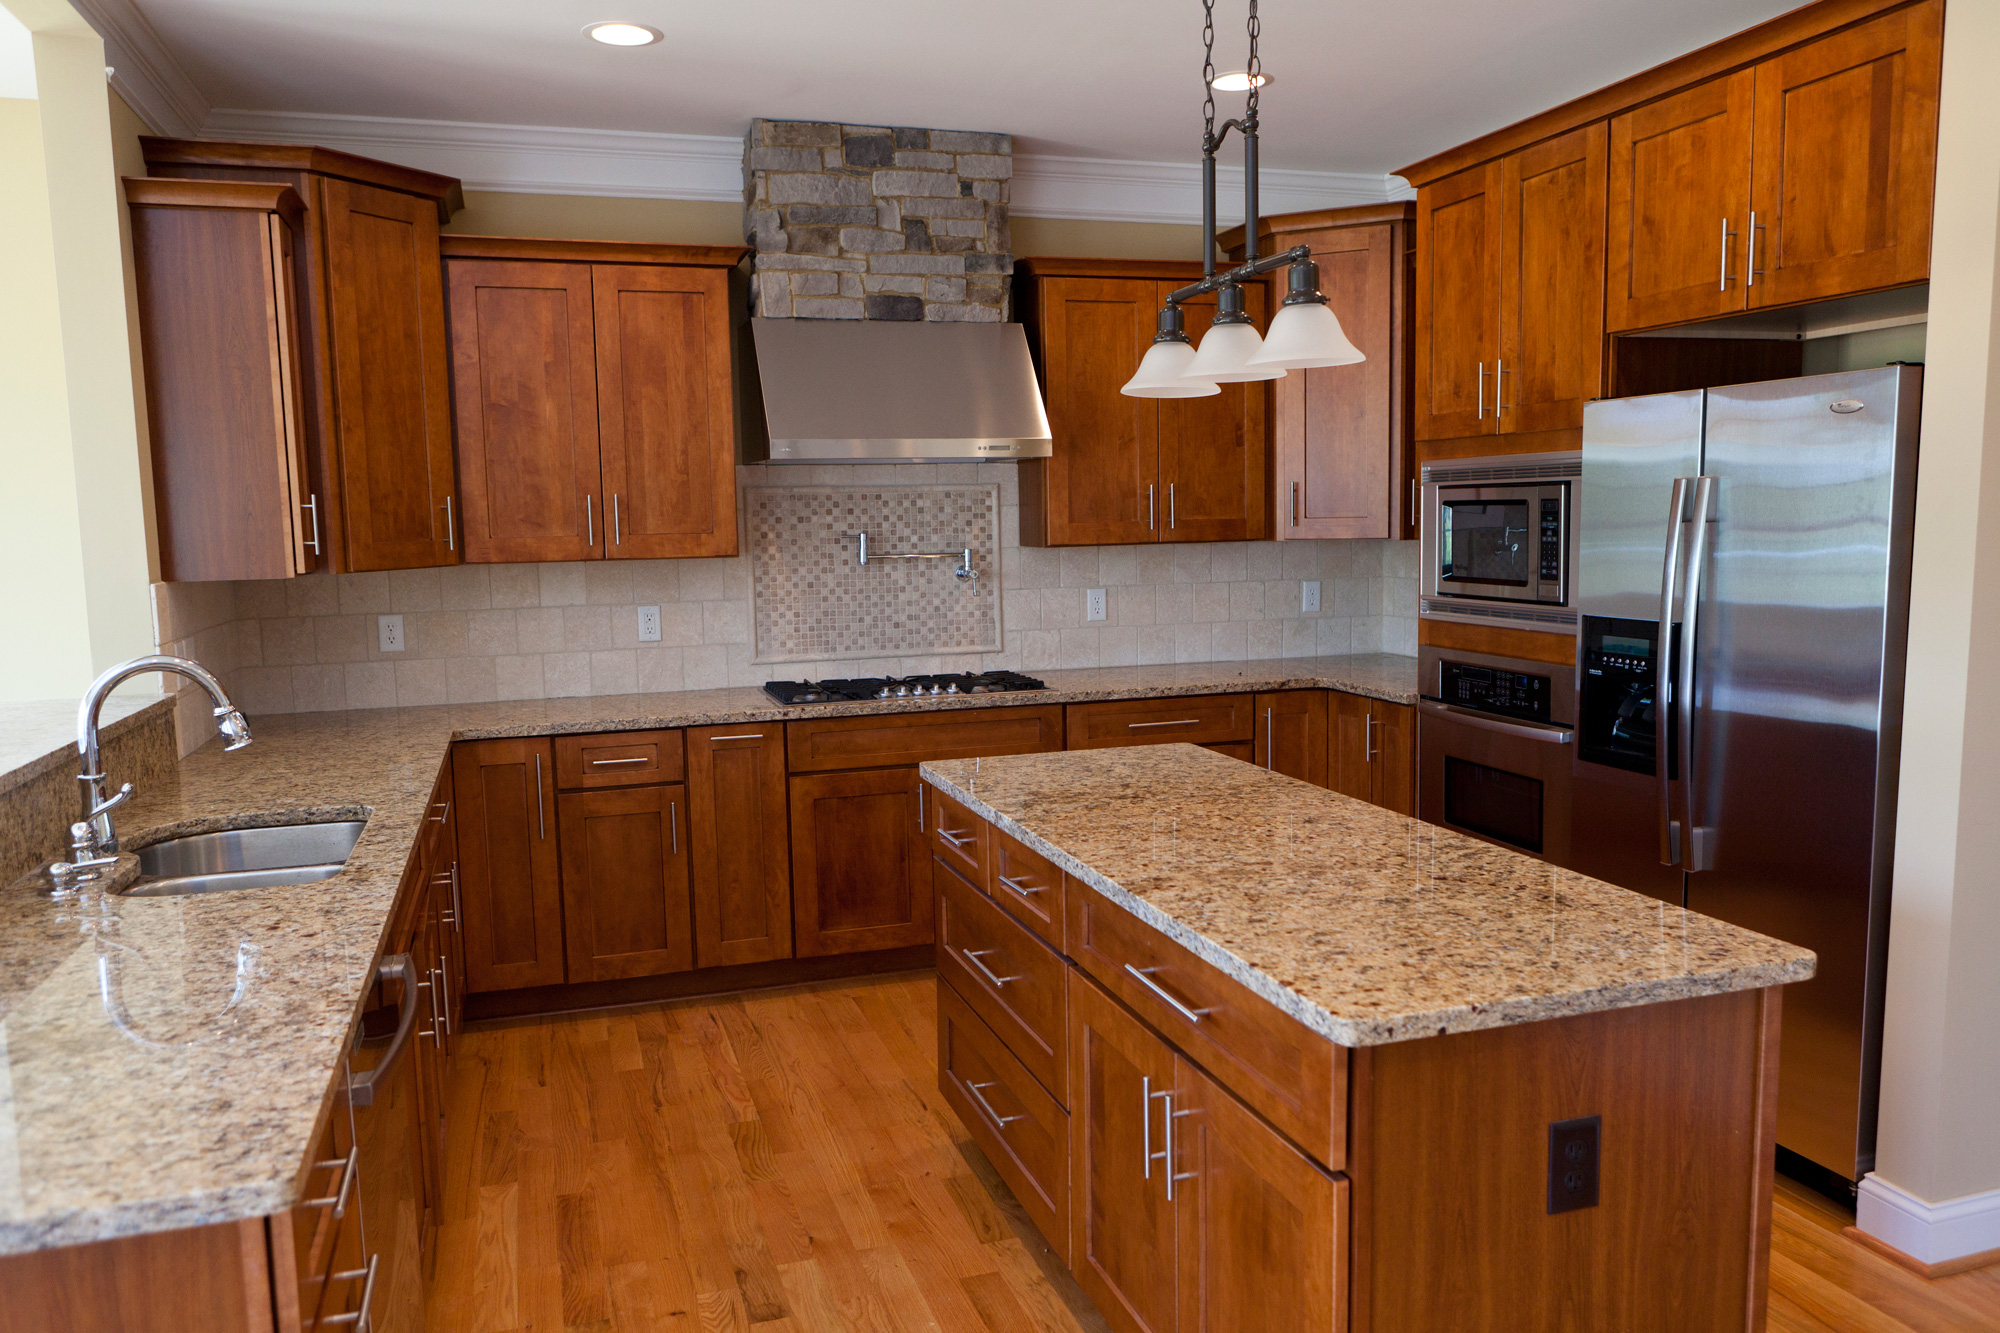 East palo alto contractor and home remodel company for Kitchen remodel pics